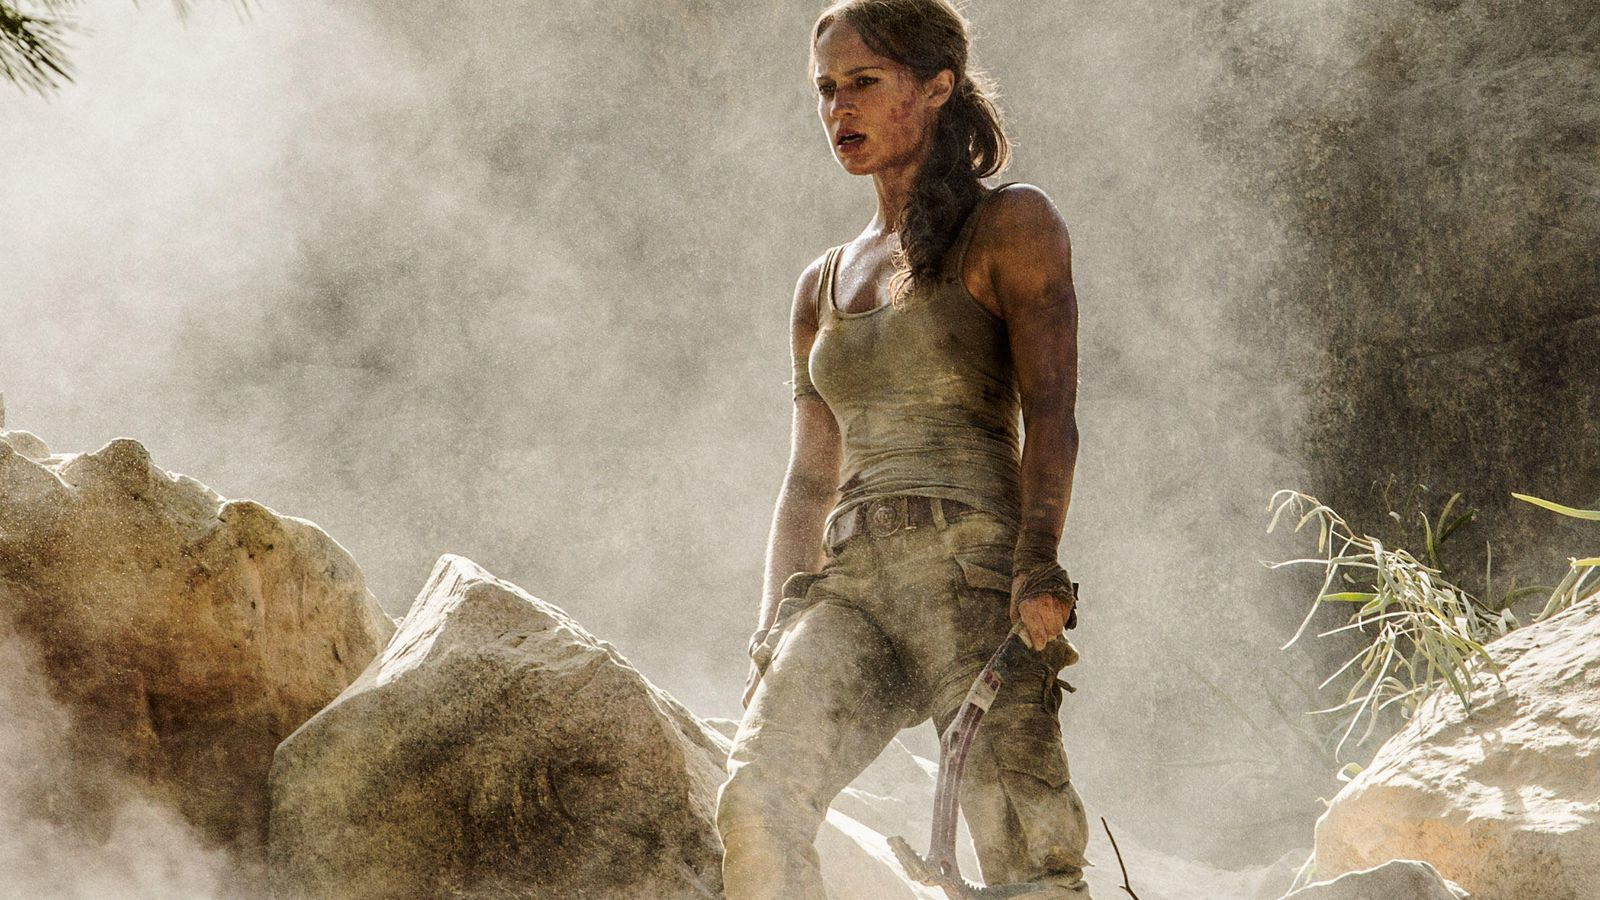 Here's our first look at Mattel's Tomb Raider Barbie screenshot